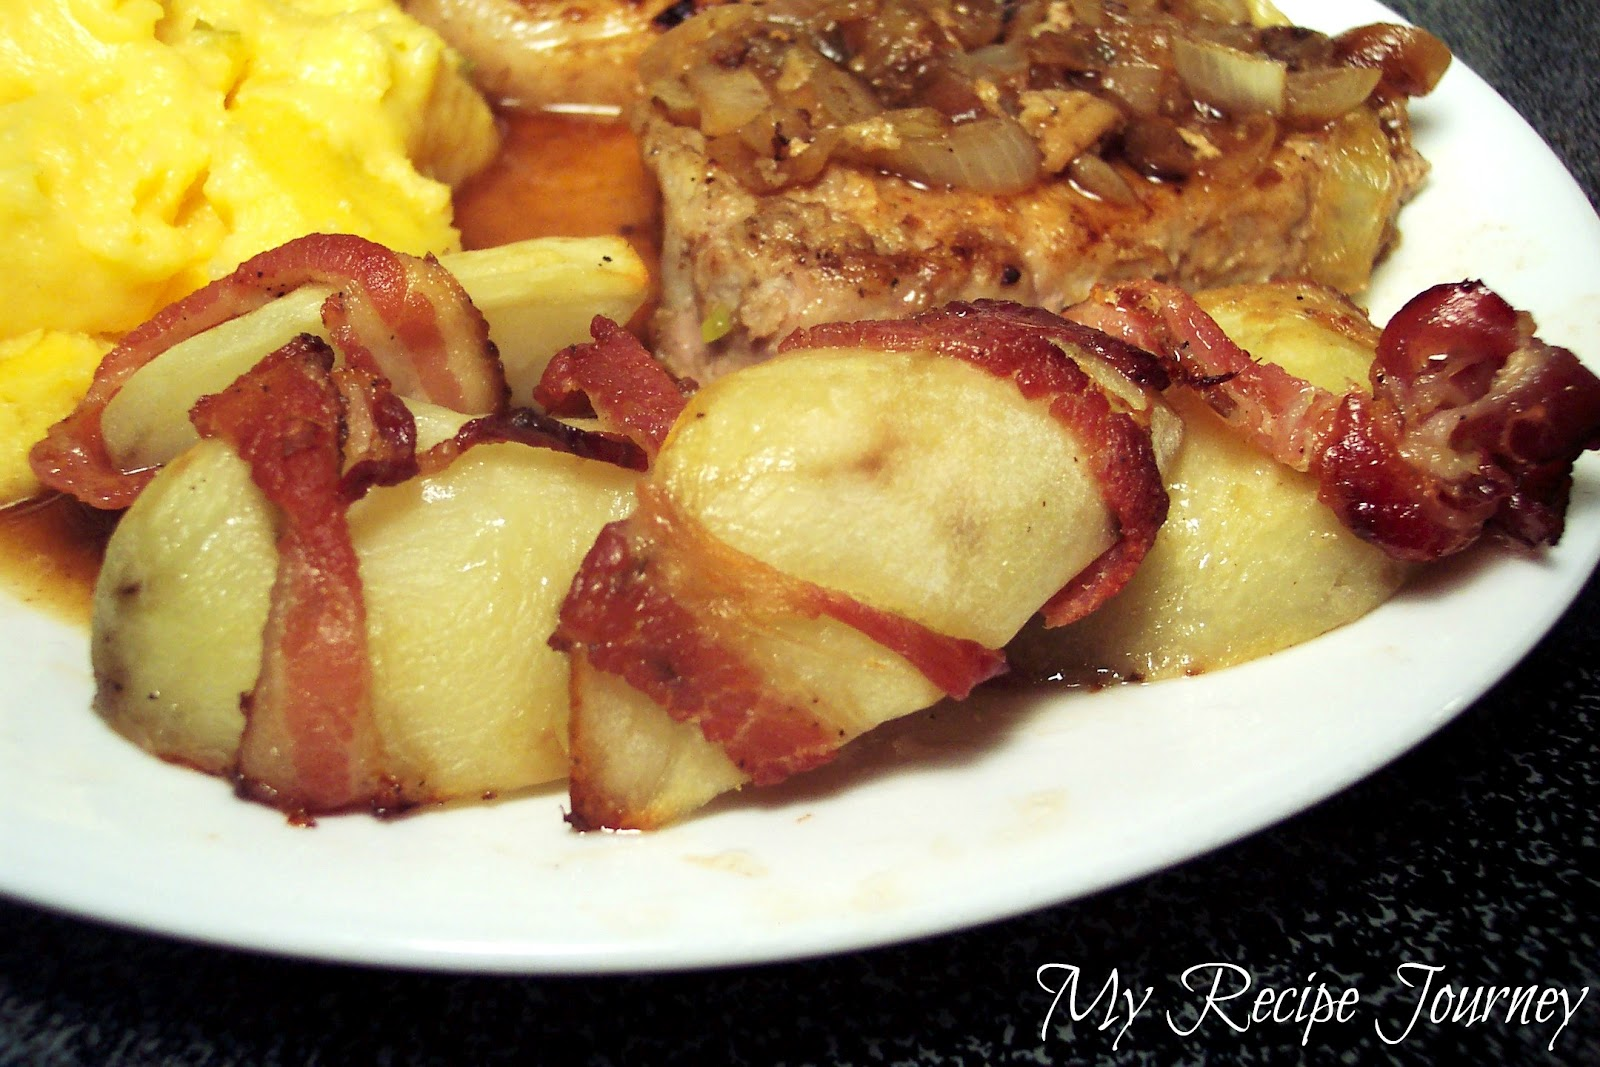 ... Chops with Onions and Cheddar Grits...and some Bacon Wrapped Potatoes